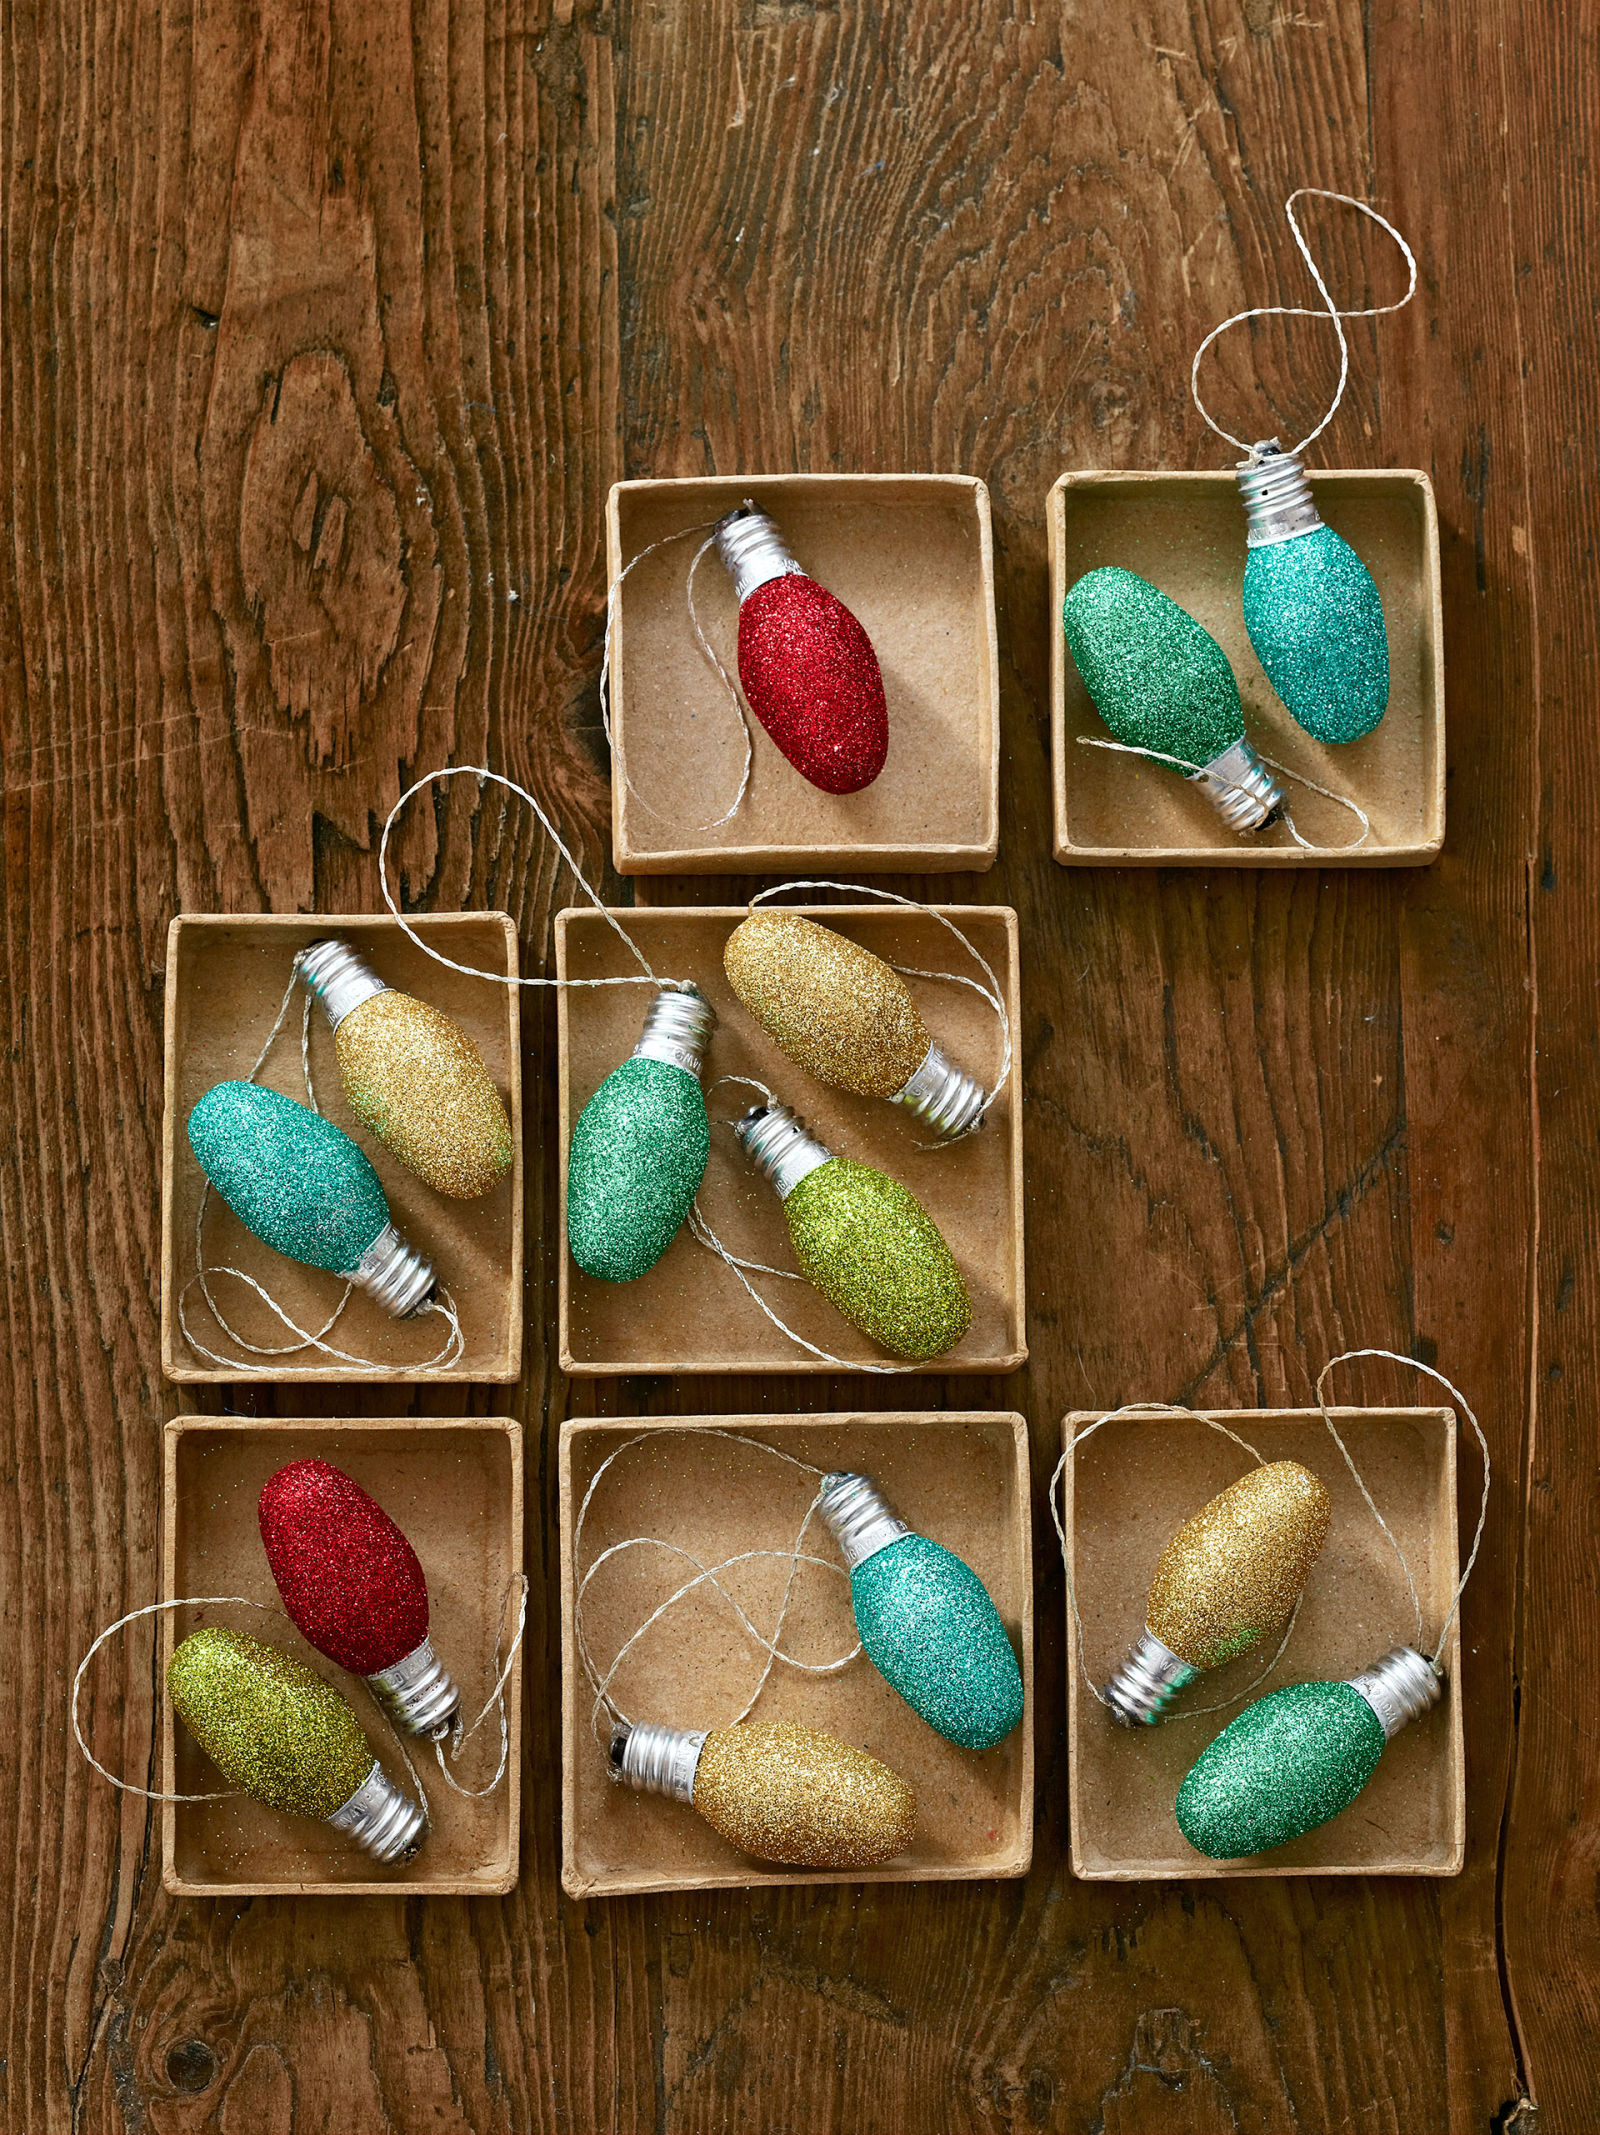 Making Christmas Ornaments For Gifts - 50 homemade christmas ornaments diy handmade holiday tree ornament craft ideas